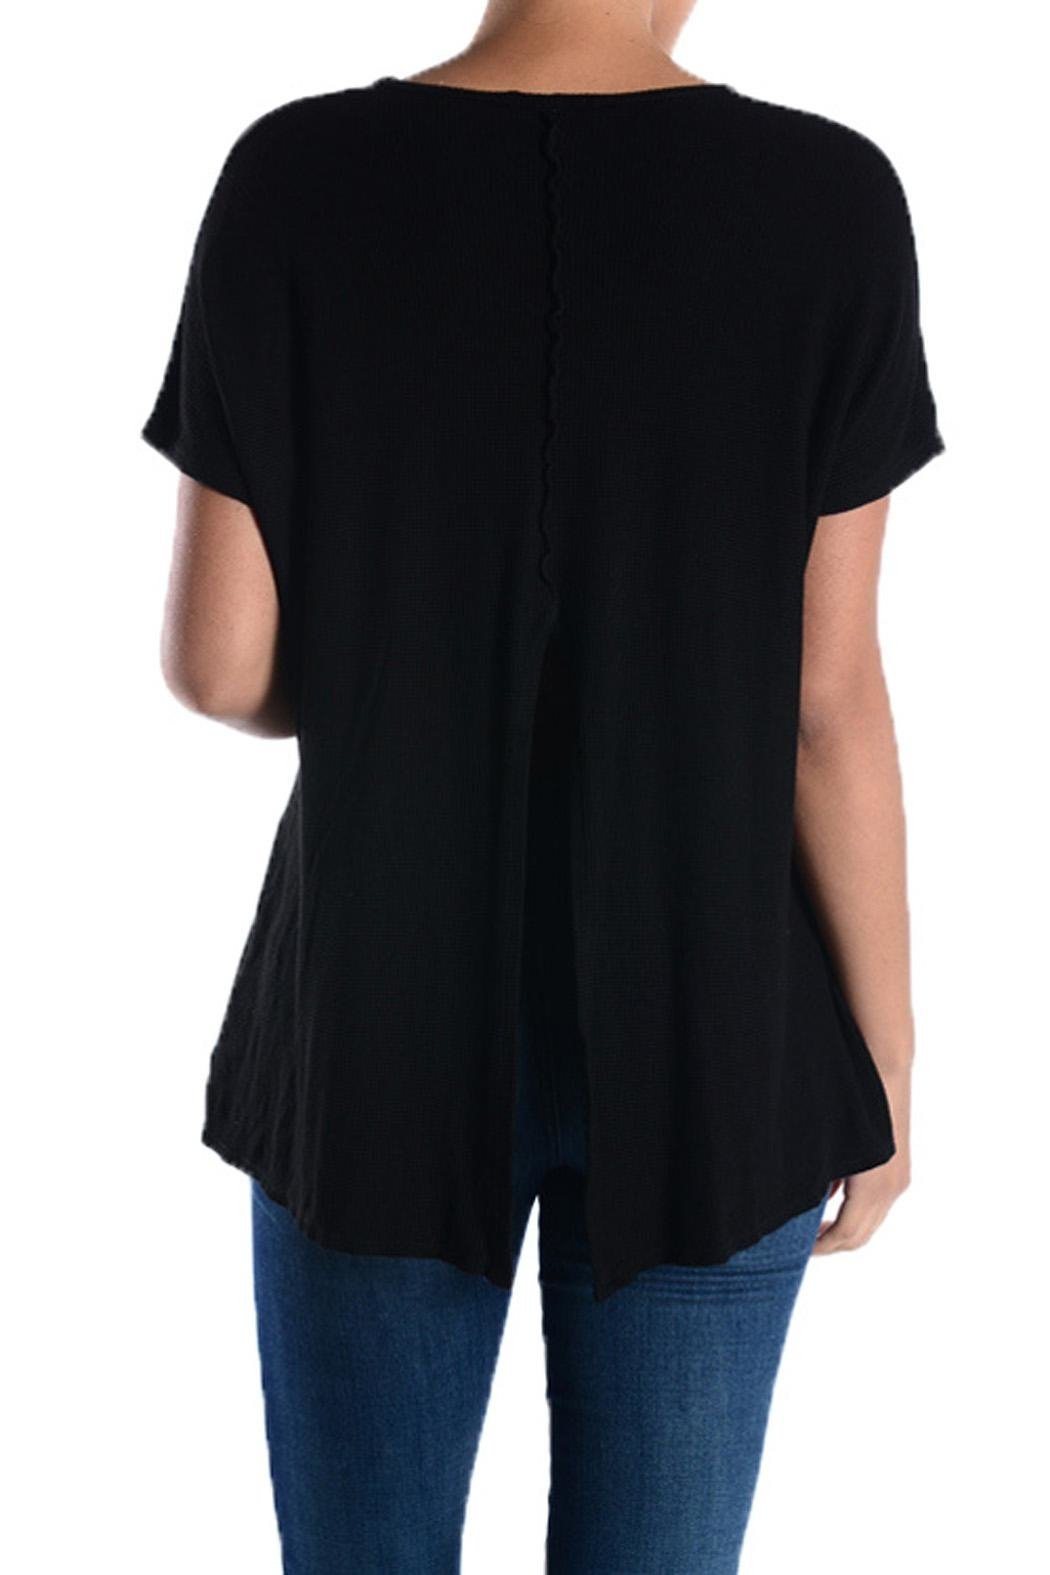 T Party Black Crop-Thermal Top - Front Full Image